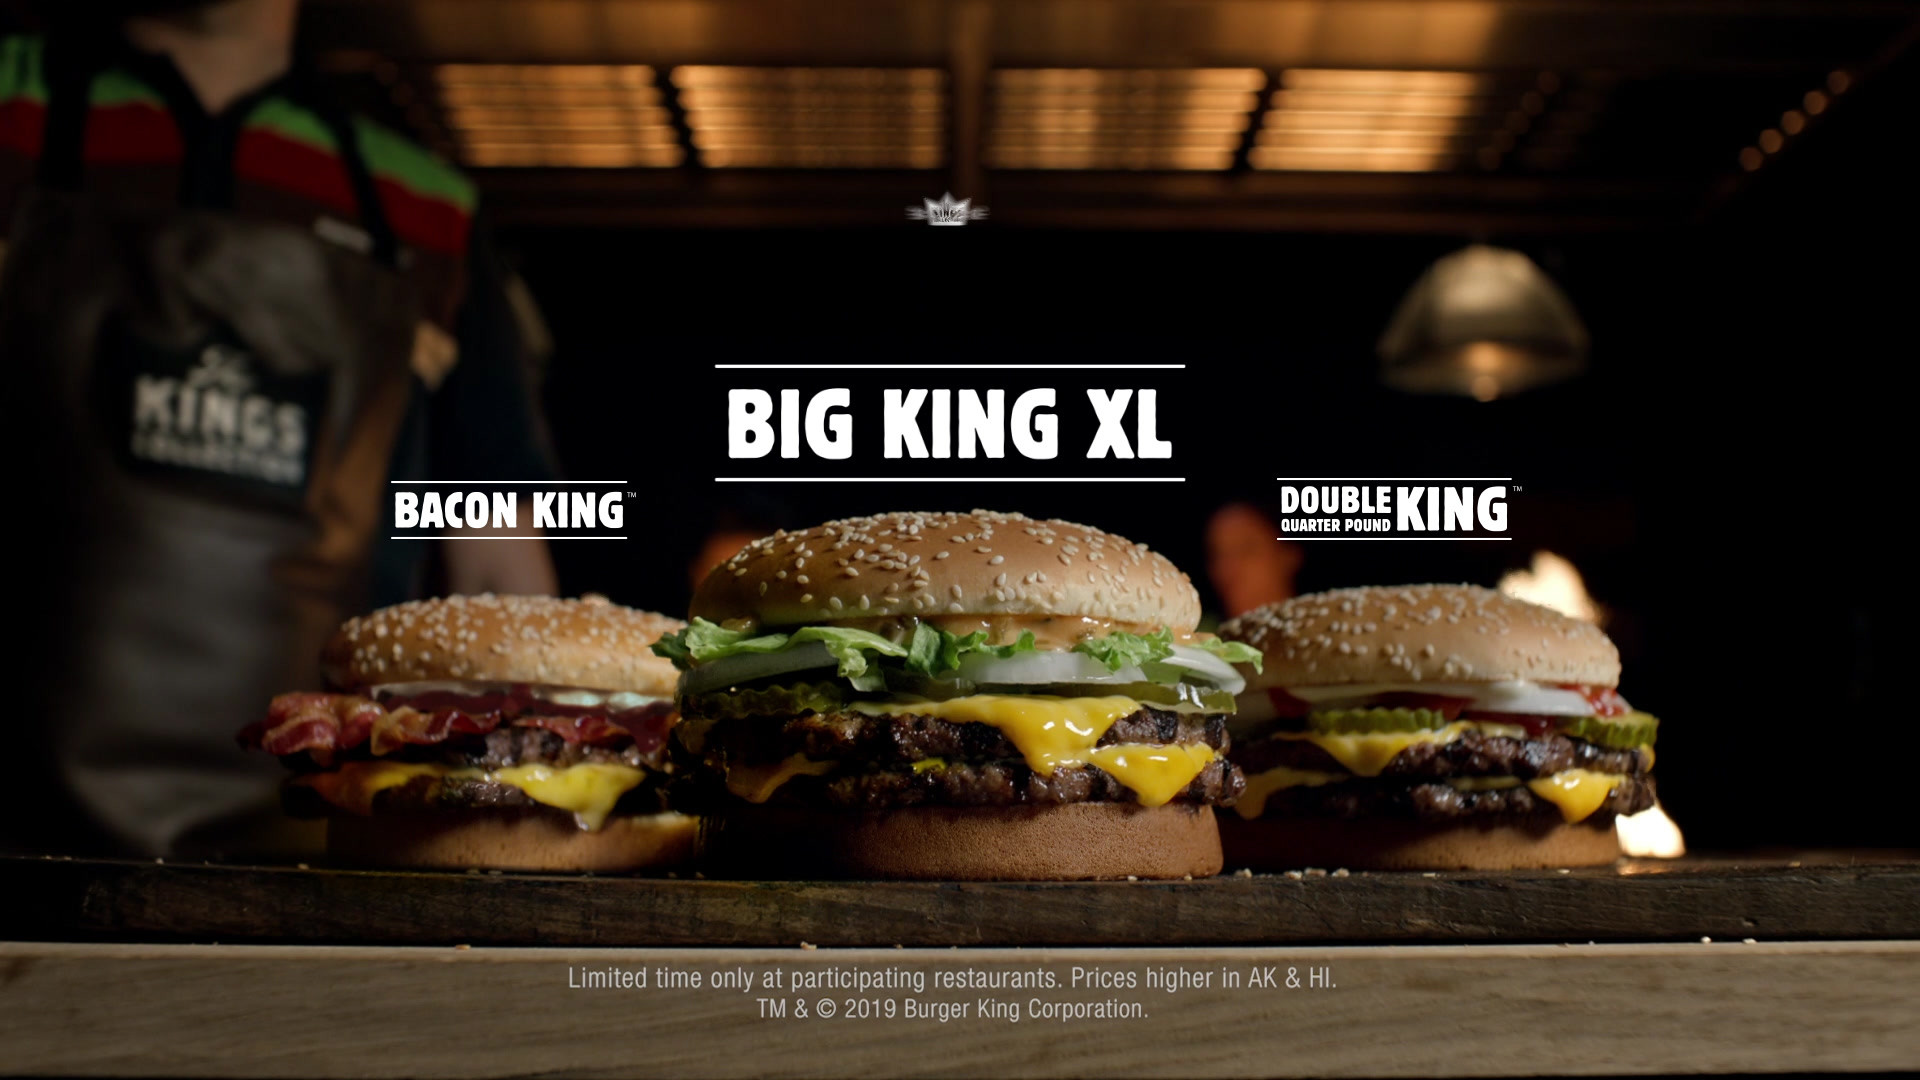 Big King XL 20200121 v1.mov